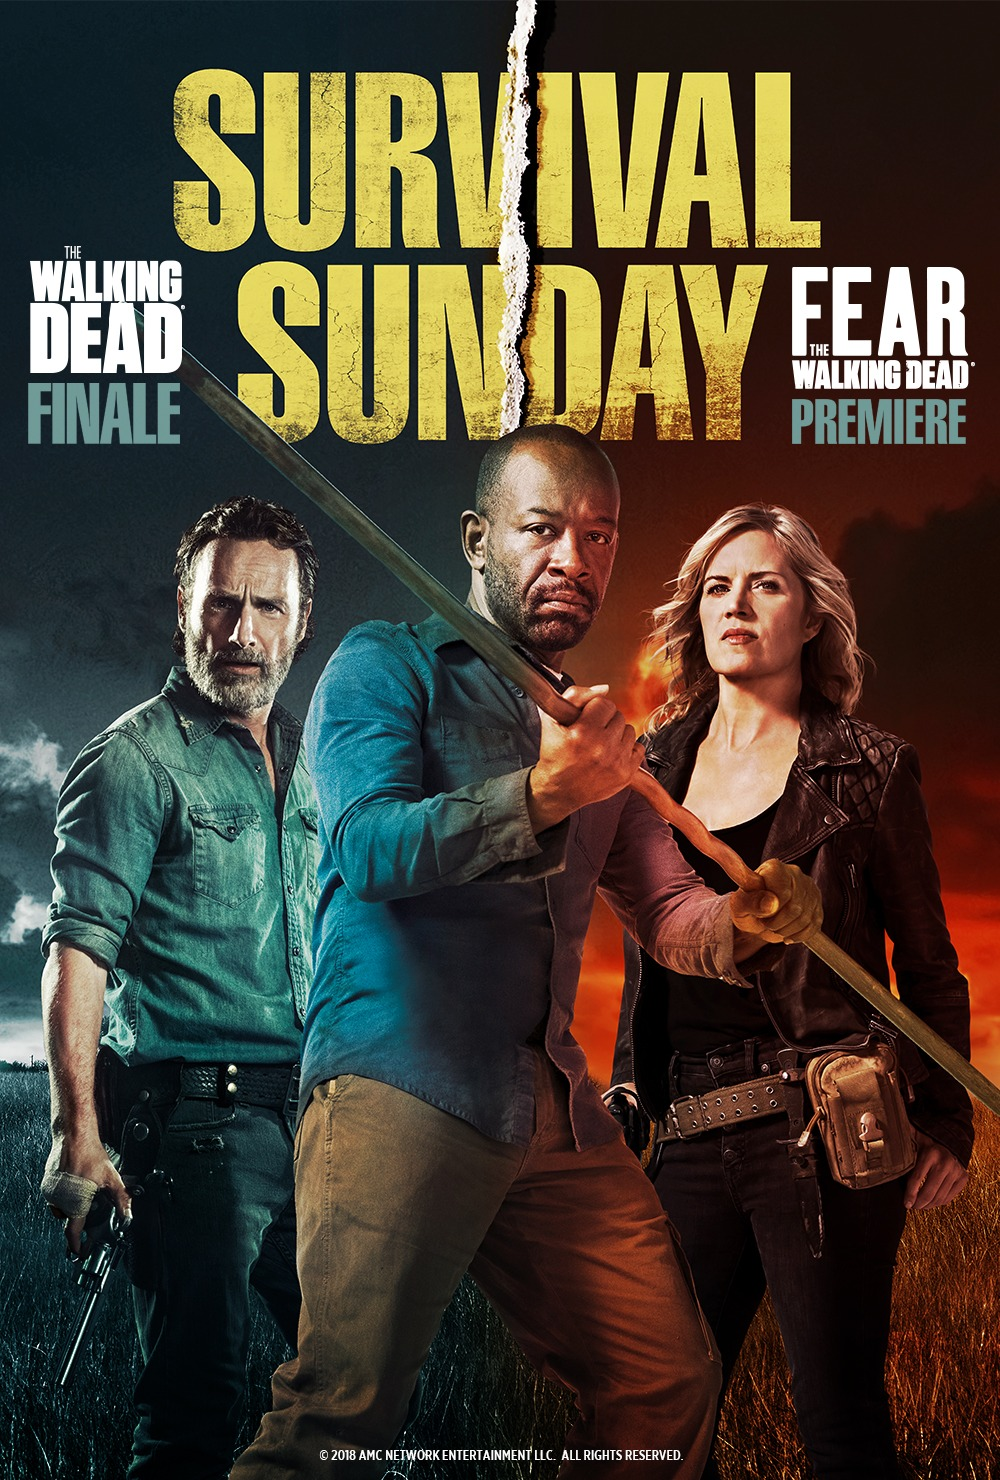 The Walking Dead/Fear the Walking Dead